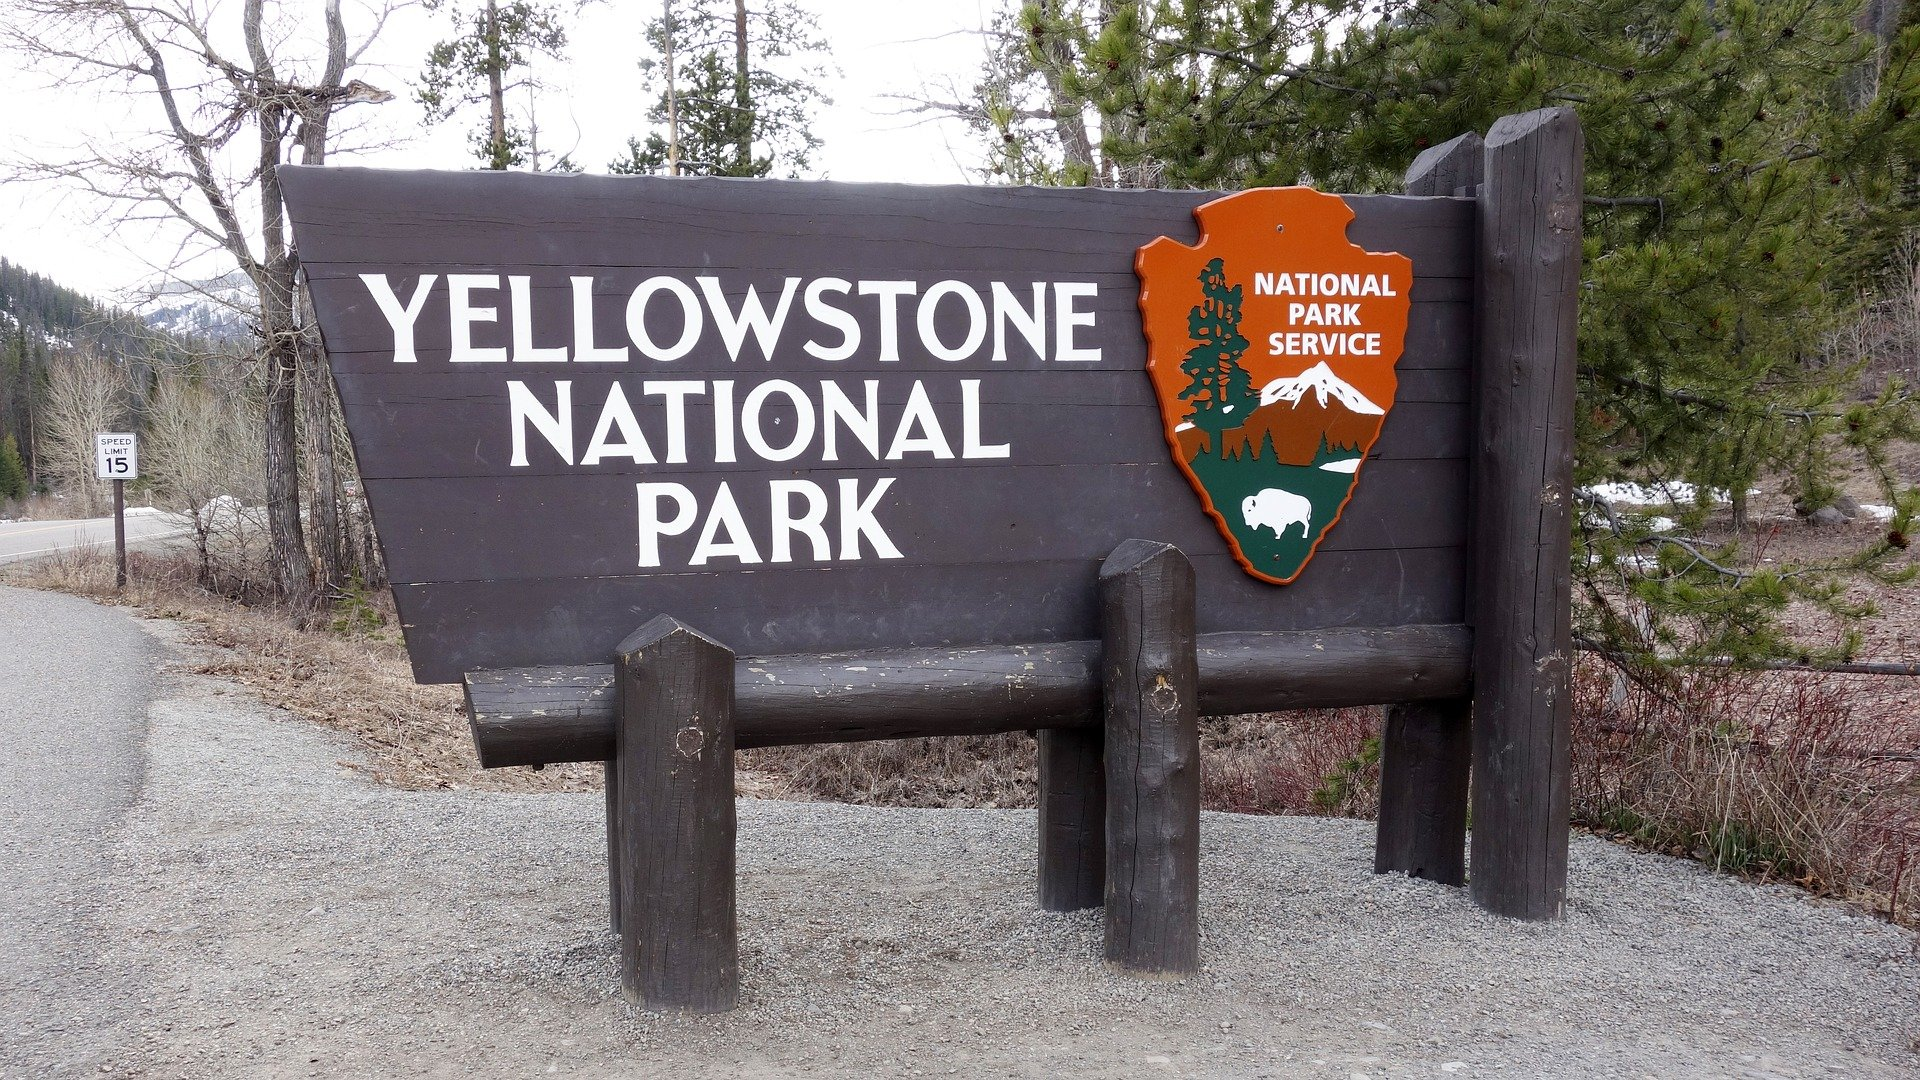 USA-Yellowstone-National-park-sign-1920